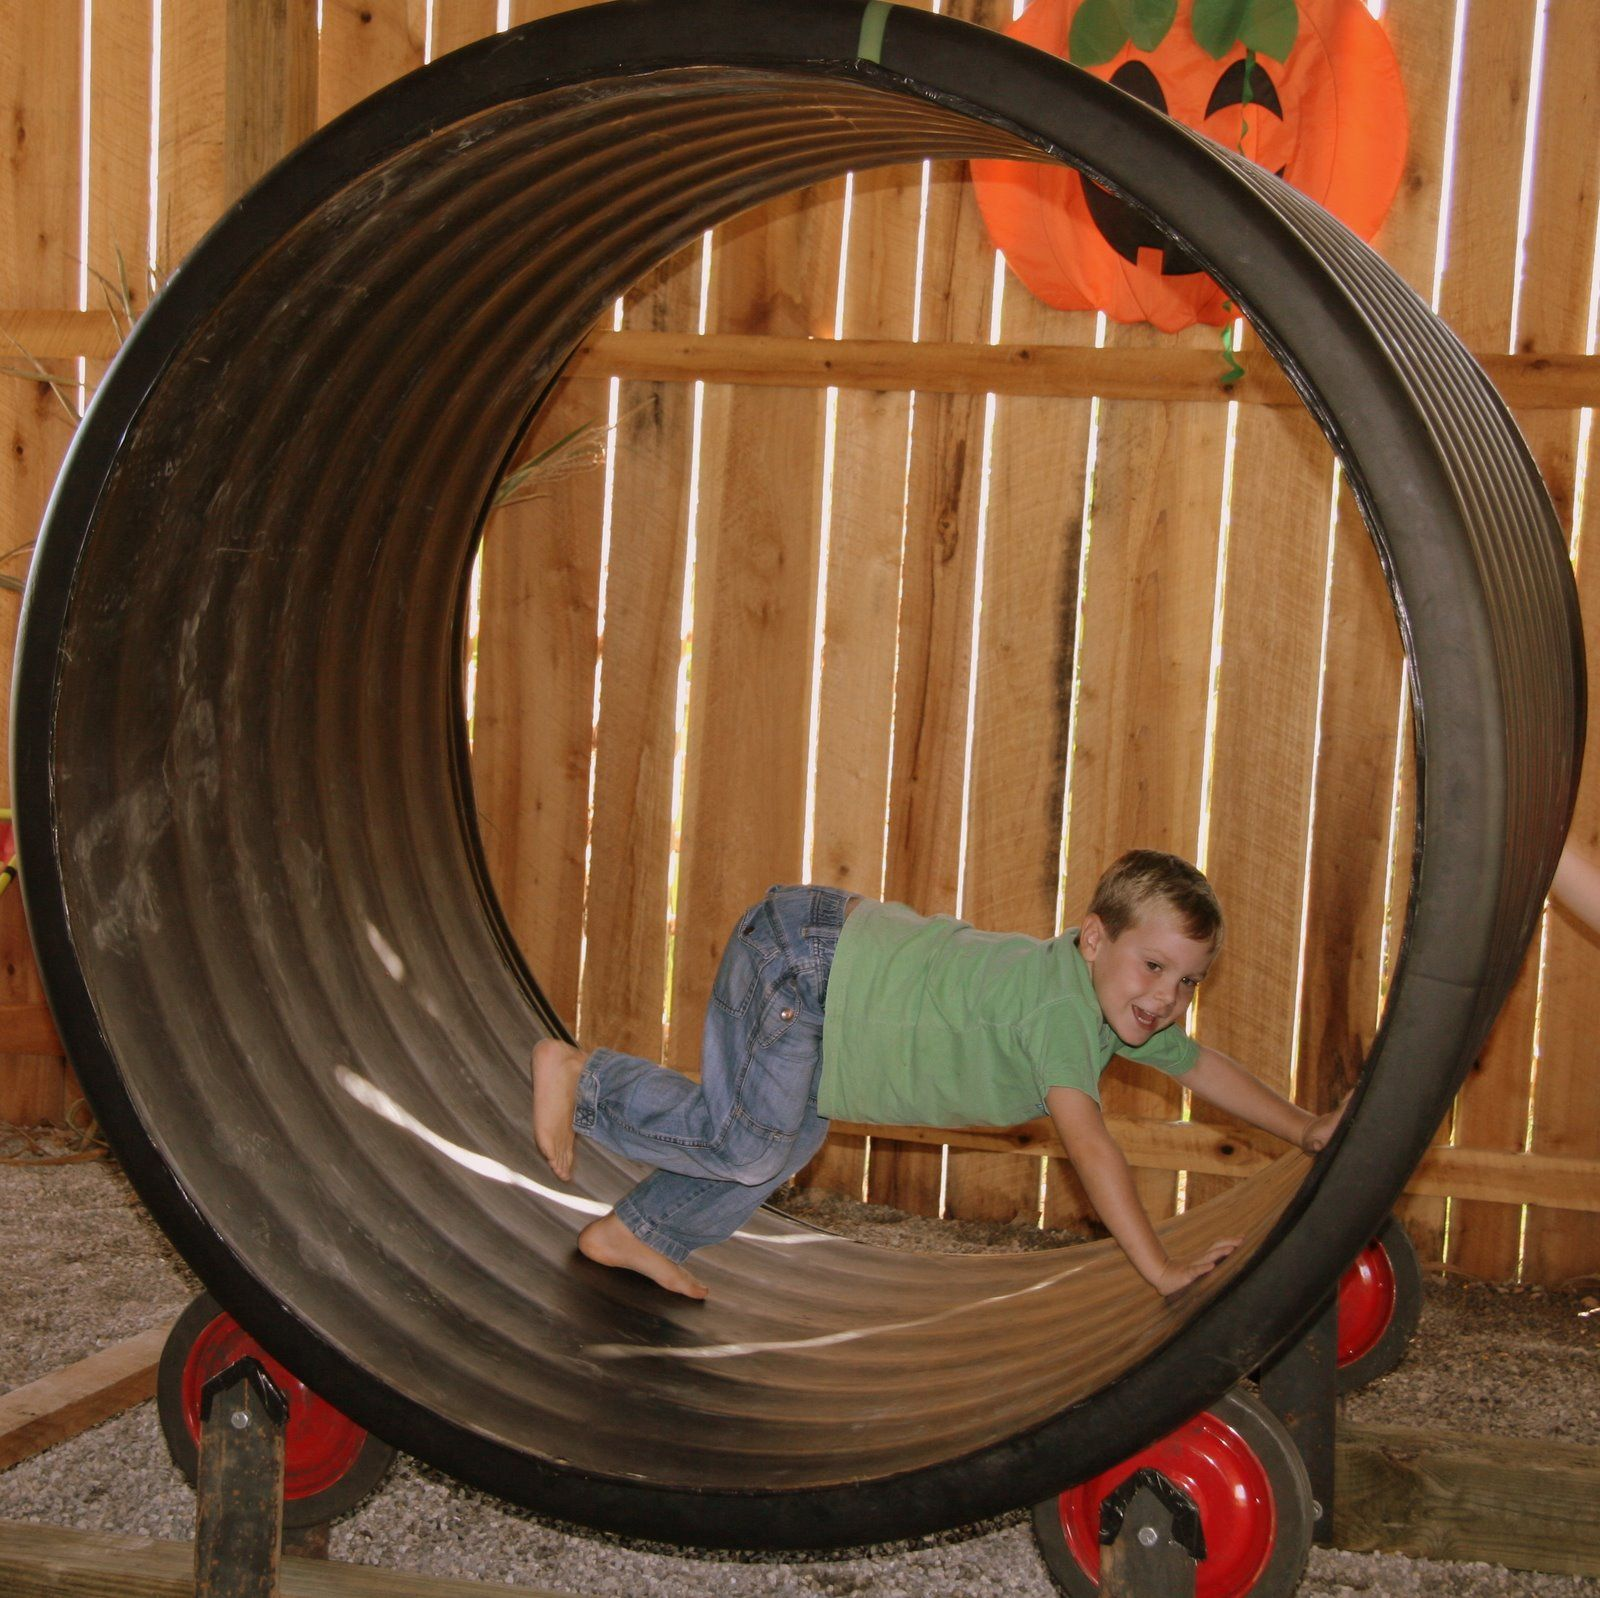 When I See This Kid Sized Hamster Wheel I Think You Could Recreate This This Was Done Basically With Fa Backyard Playground Play Houses Outdoor Playground